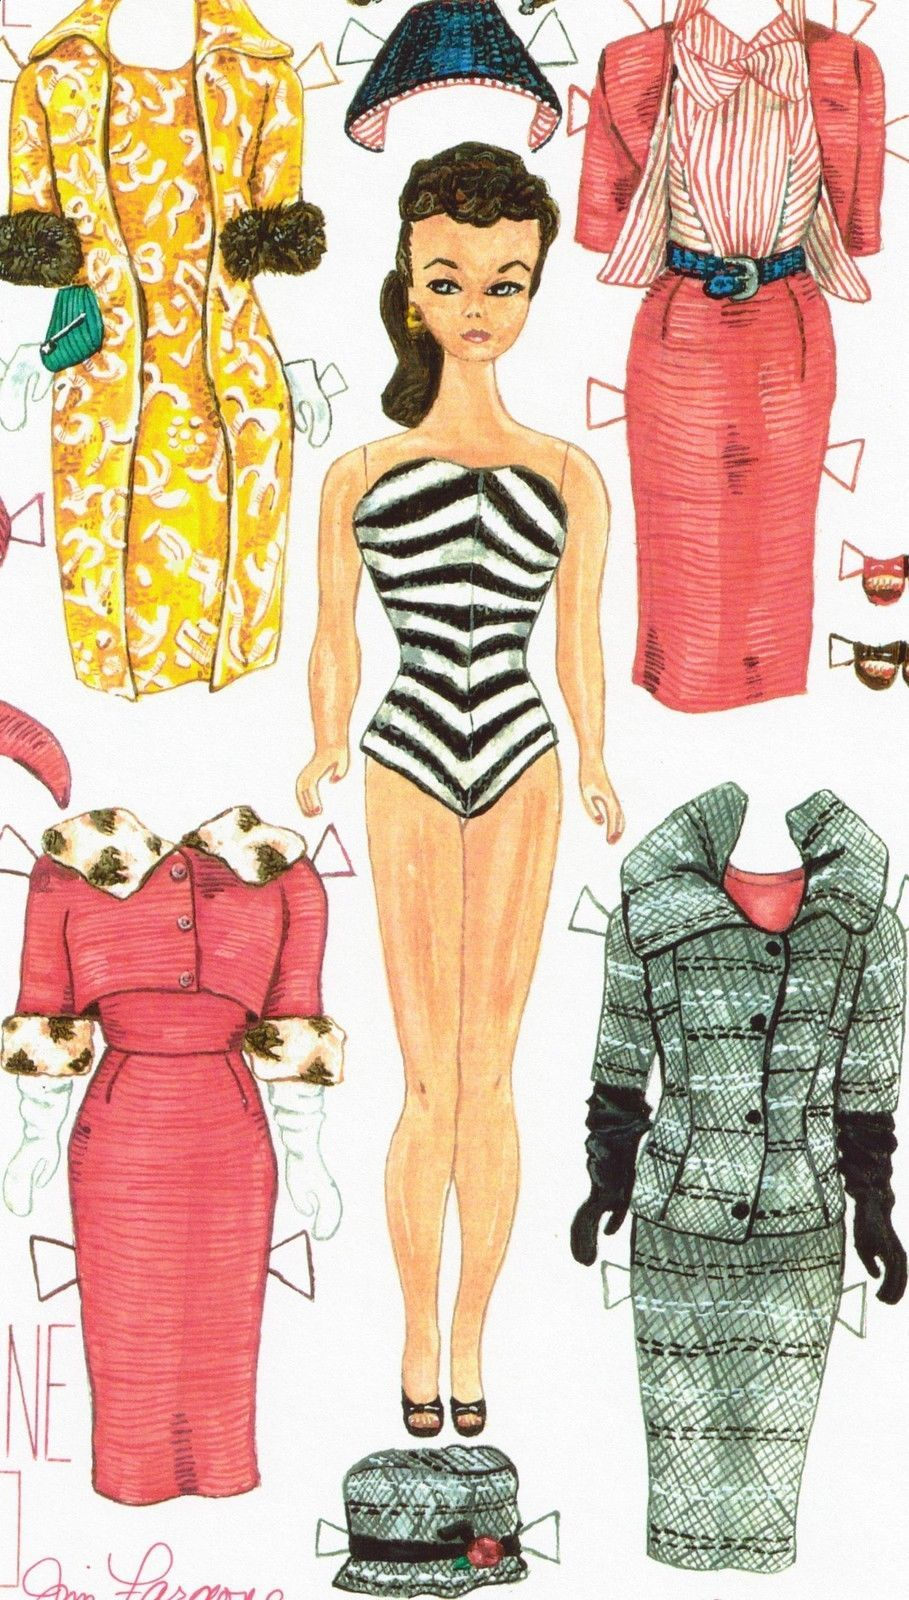 picture about Printable Barbie Paper Dolls referred to as Barbie paper doll artwork through Jim Faraone 15 of 50 signed 1959